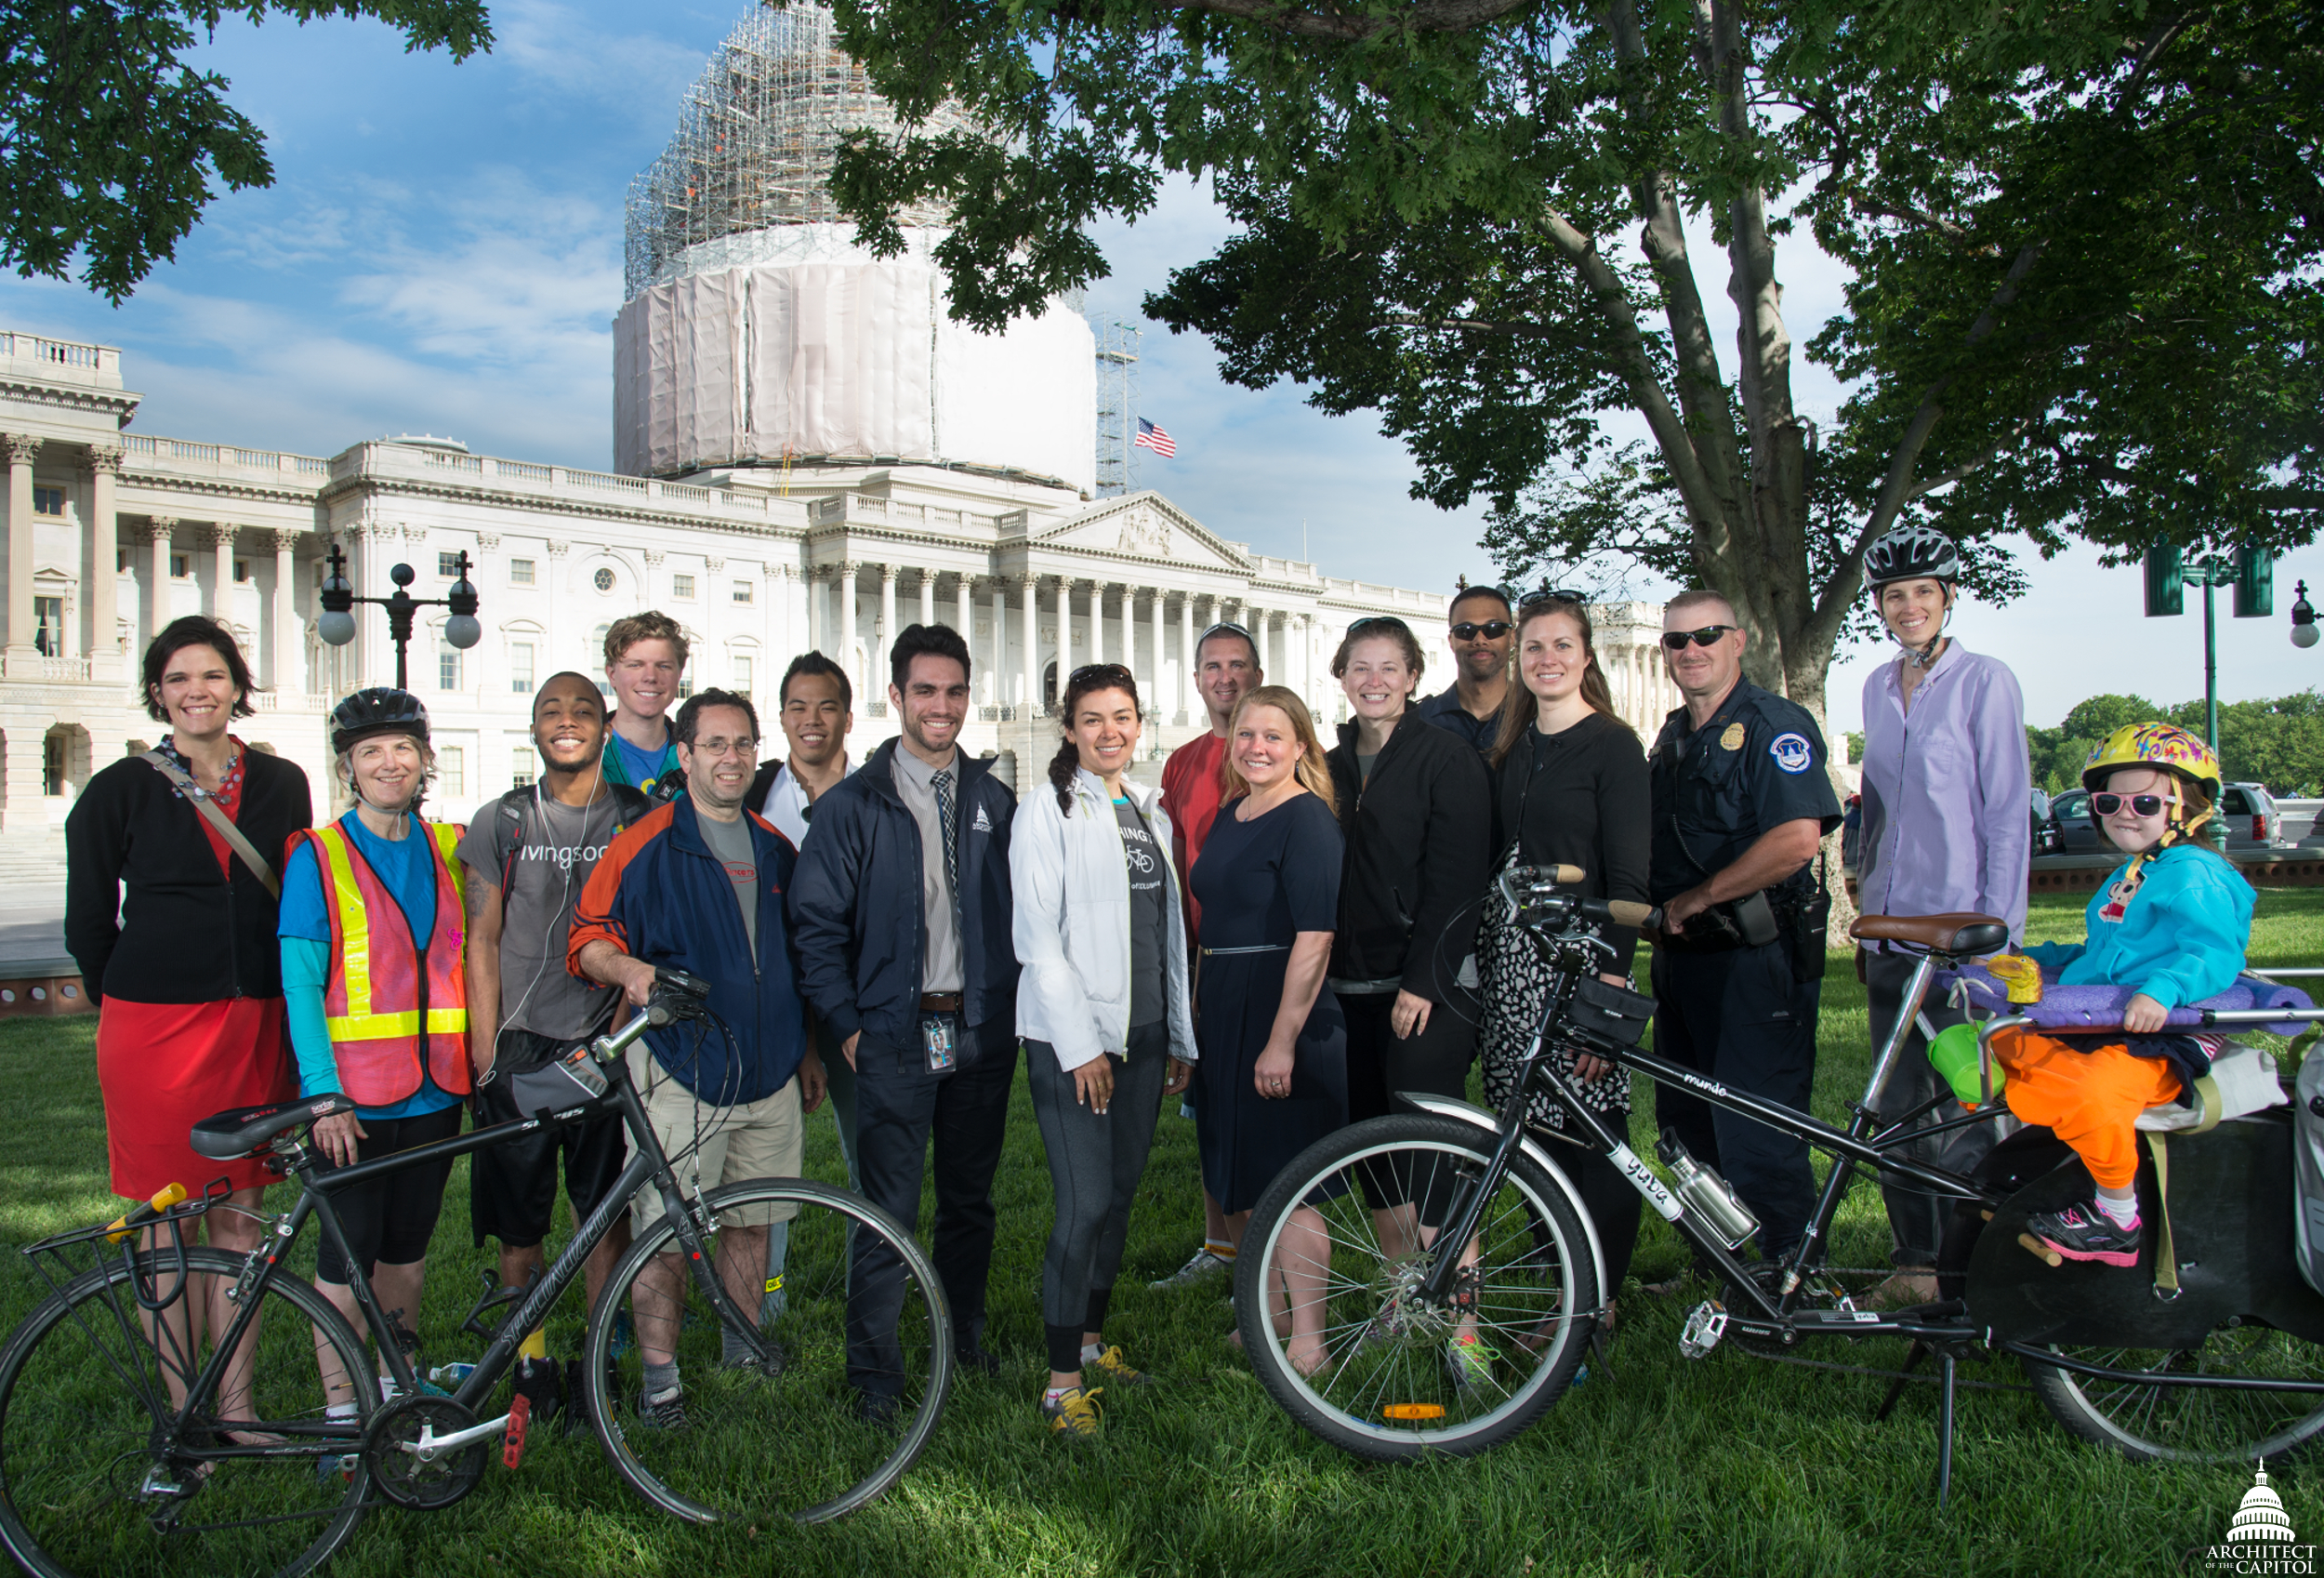 Architect of the Capitol employees pose for a group photo on Ride Your Bike to Work Day, May 2015.